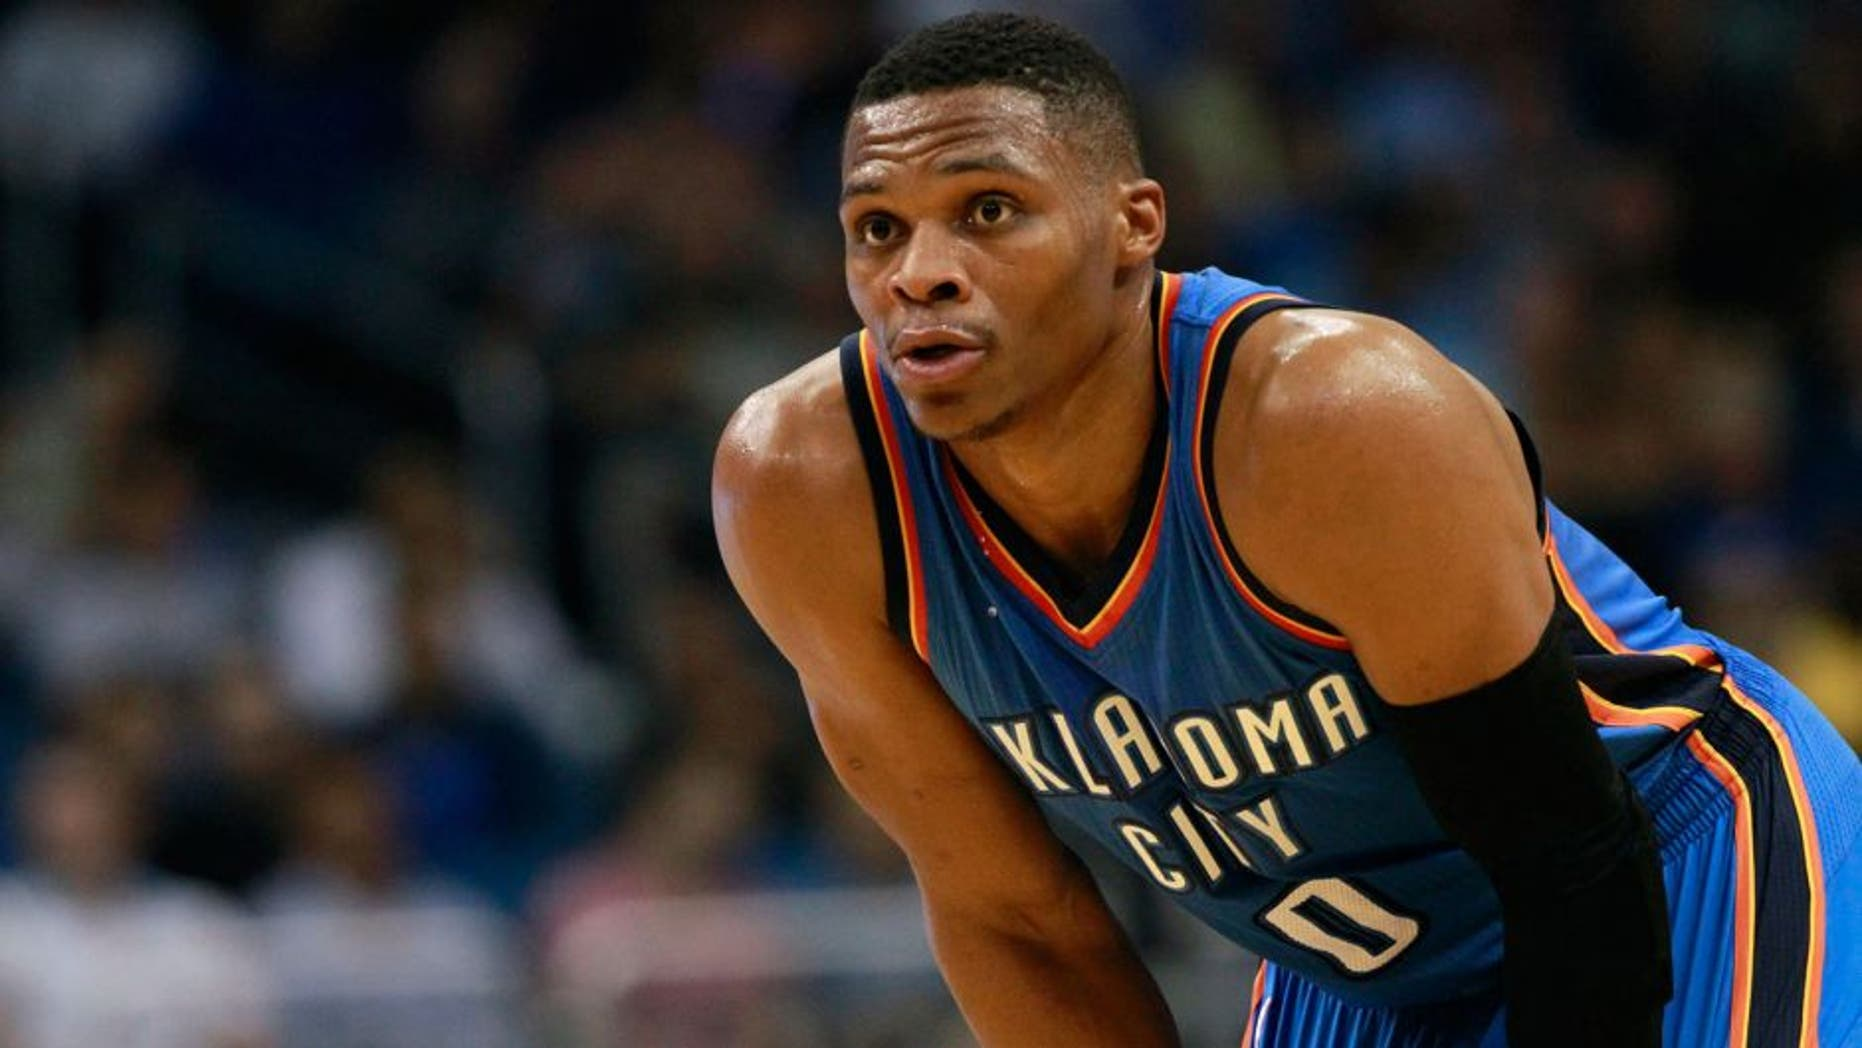 Oct 30, 2015; Orlando, FL, USA; Oklahoma City Thunder guard Russell Westbrook (0) looks on against the Orlando Magic during the second quarter at Amway Center. Mandatory Credit: Kim Klement-USA TODAY Sports